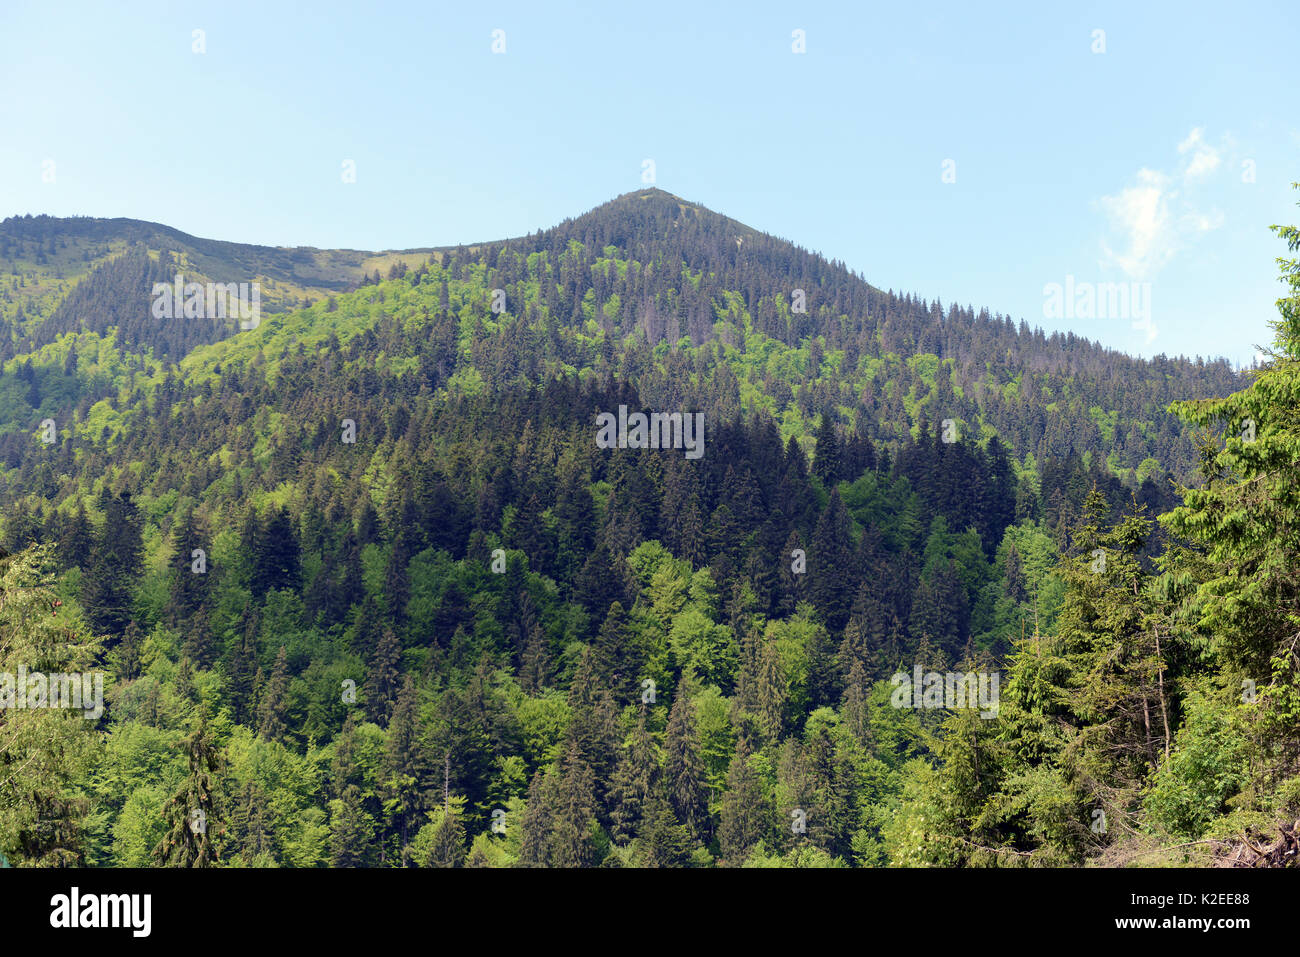 Natural tree cover on the Carpathian Mountains with deciduous trees giving way to conifers on the mountain top, Zakarpattia Oblast, Ukraine.  May. 2016. - Stock Image